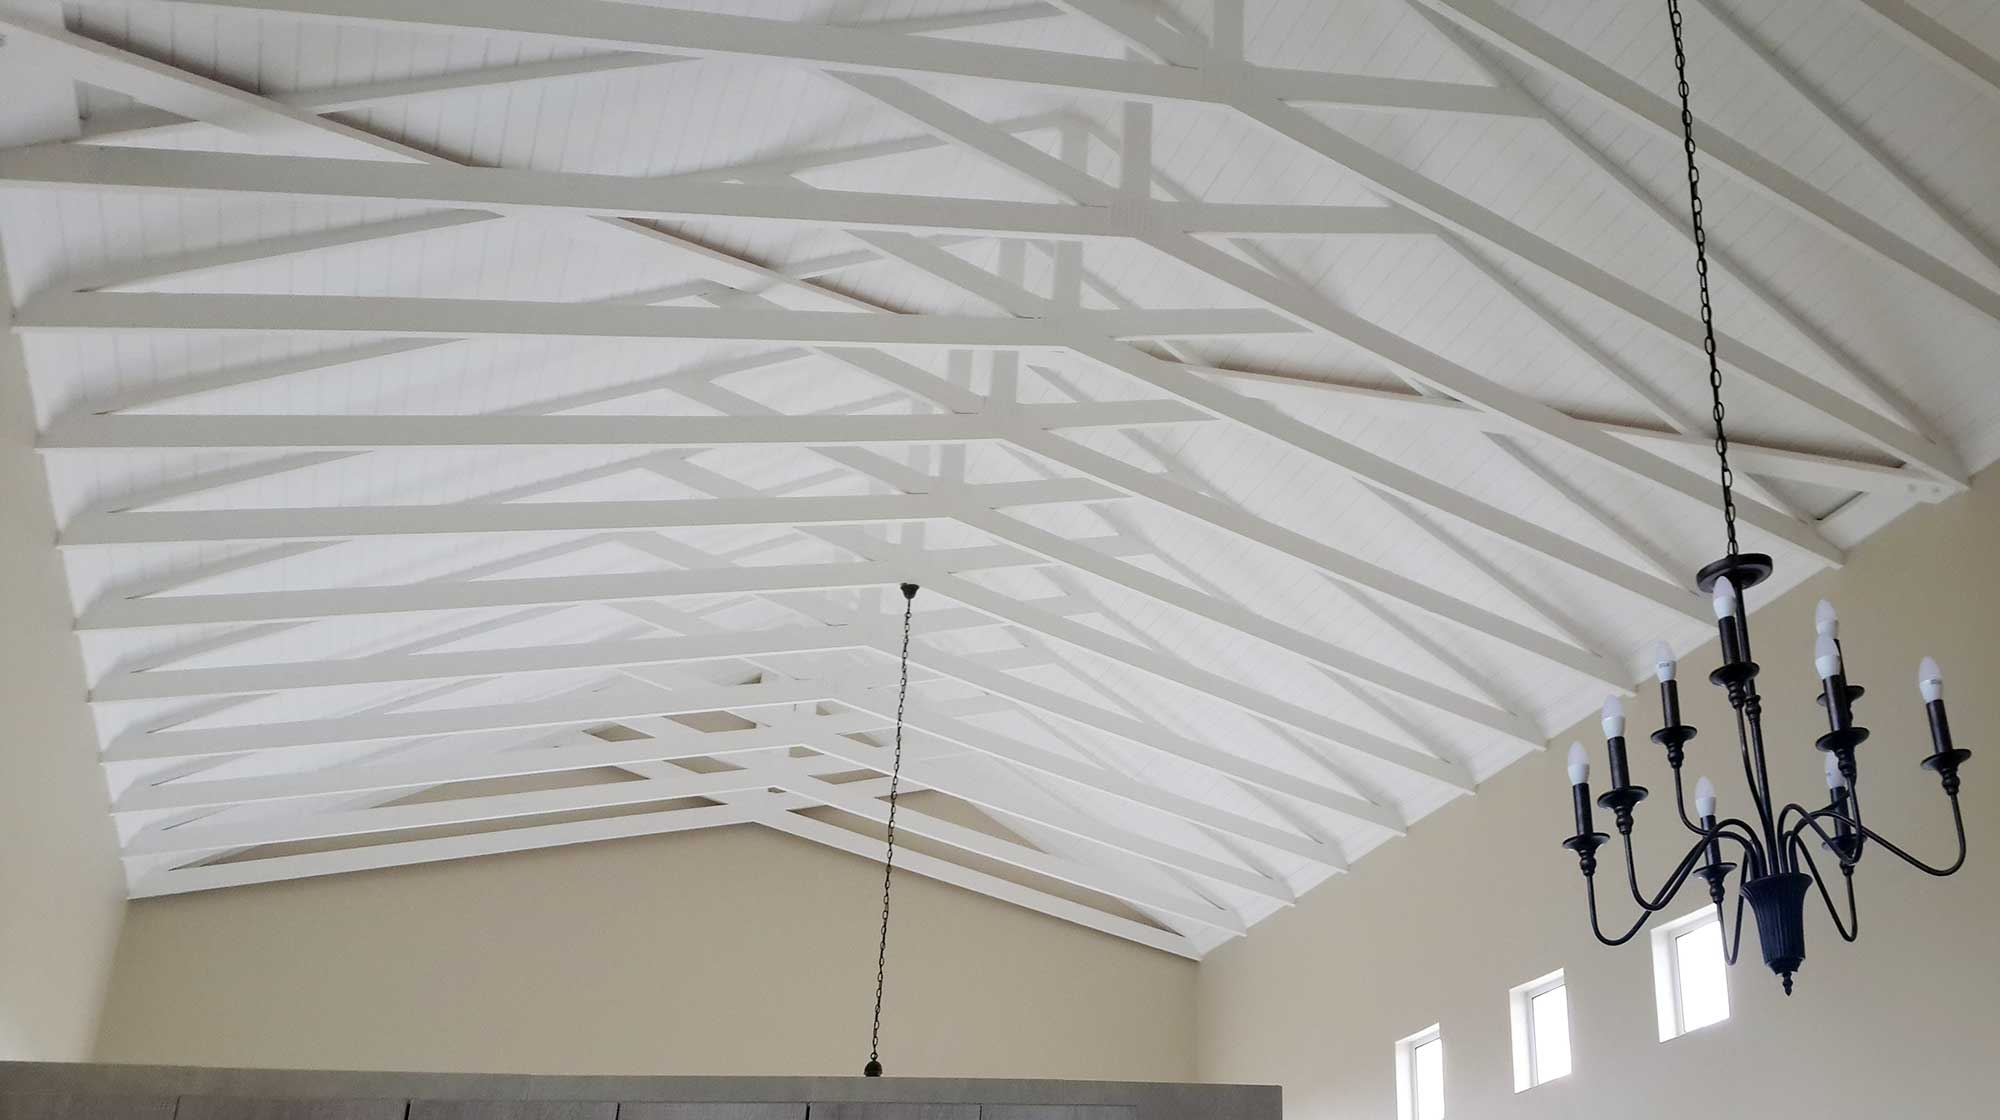 Roof Trusses Pretoria Roofing Supplier Pretoria Gauteng